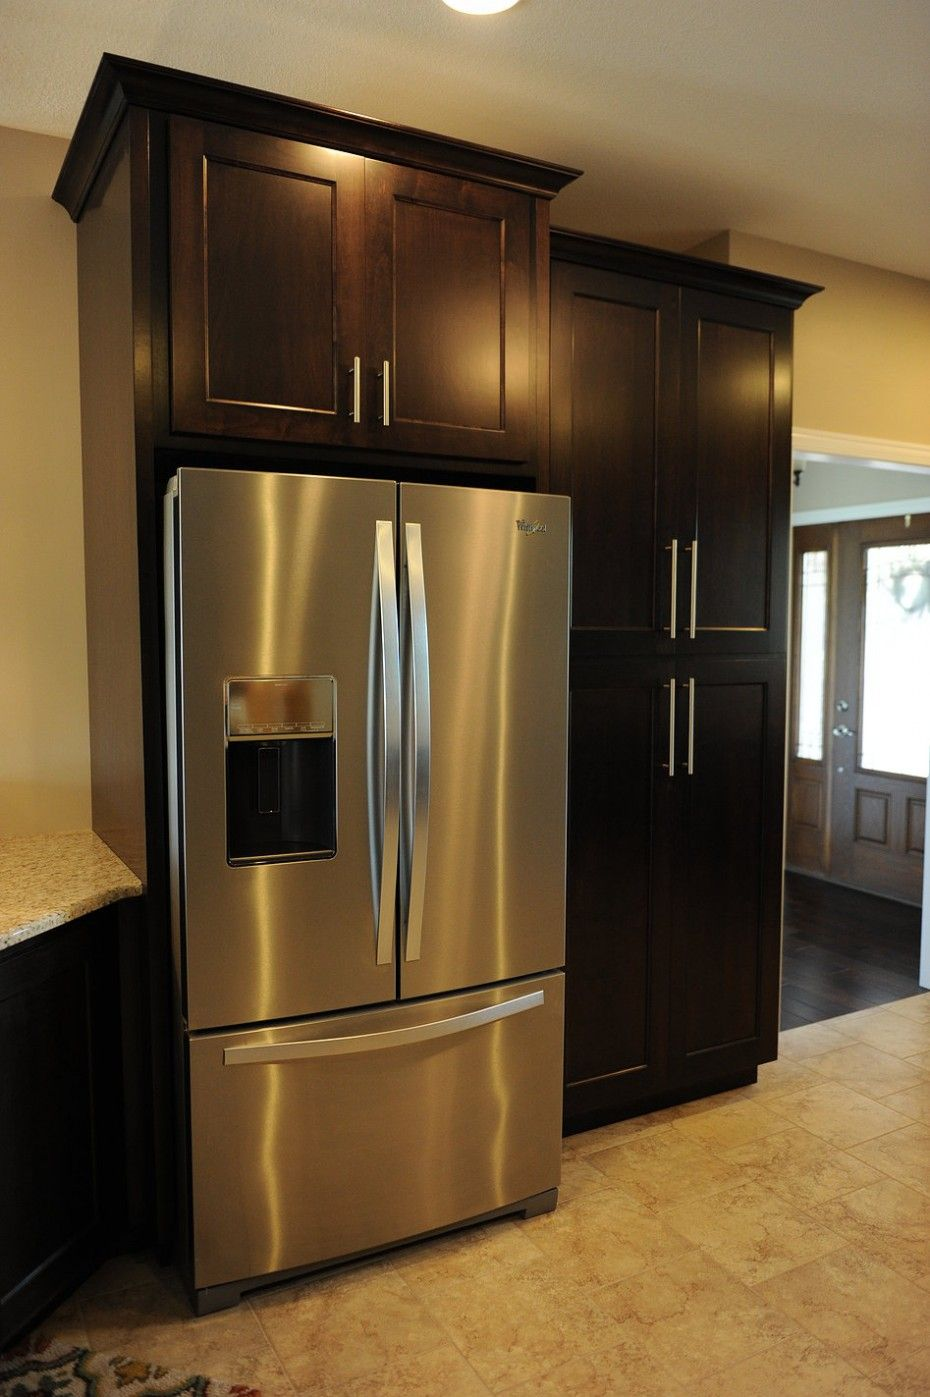 Black Polished Oak Wood Tall Free Standing Pantry Cabinet Storage Built In Refrigerator Cupboard Standing Pantry Outdoor Kitchen Cabinets Free Standing Pantry